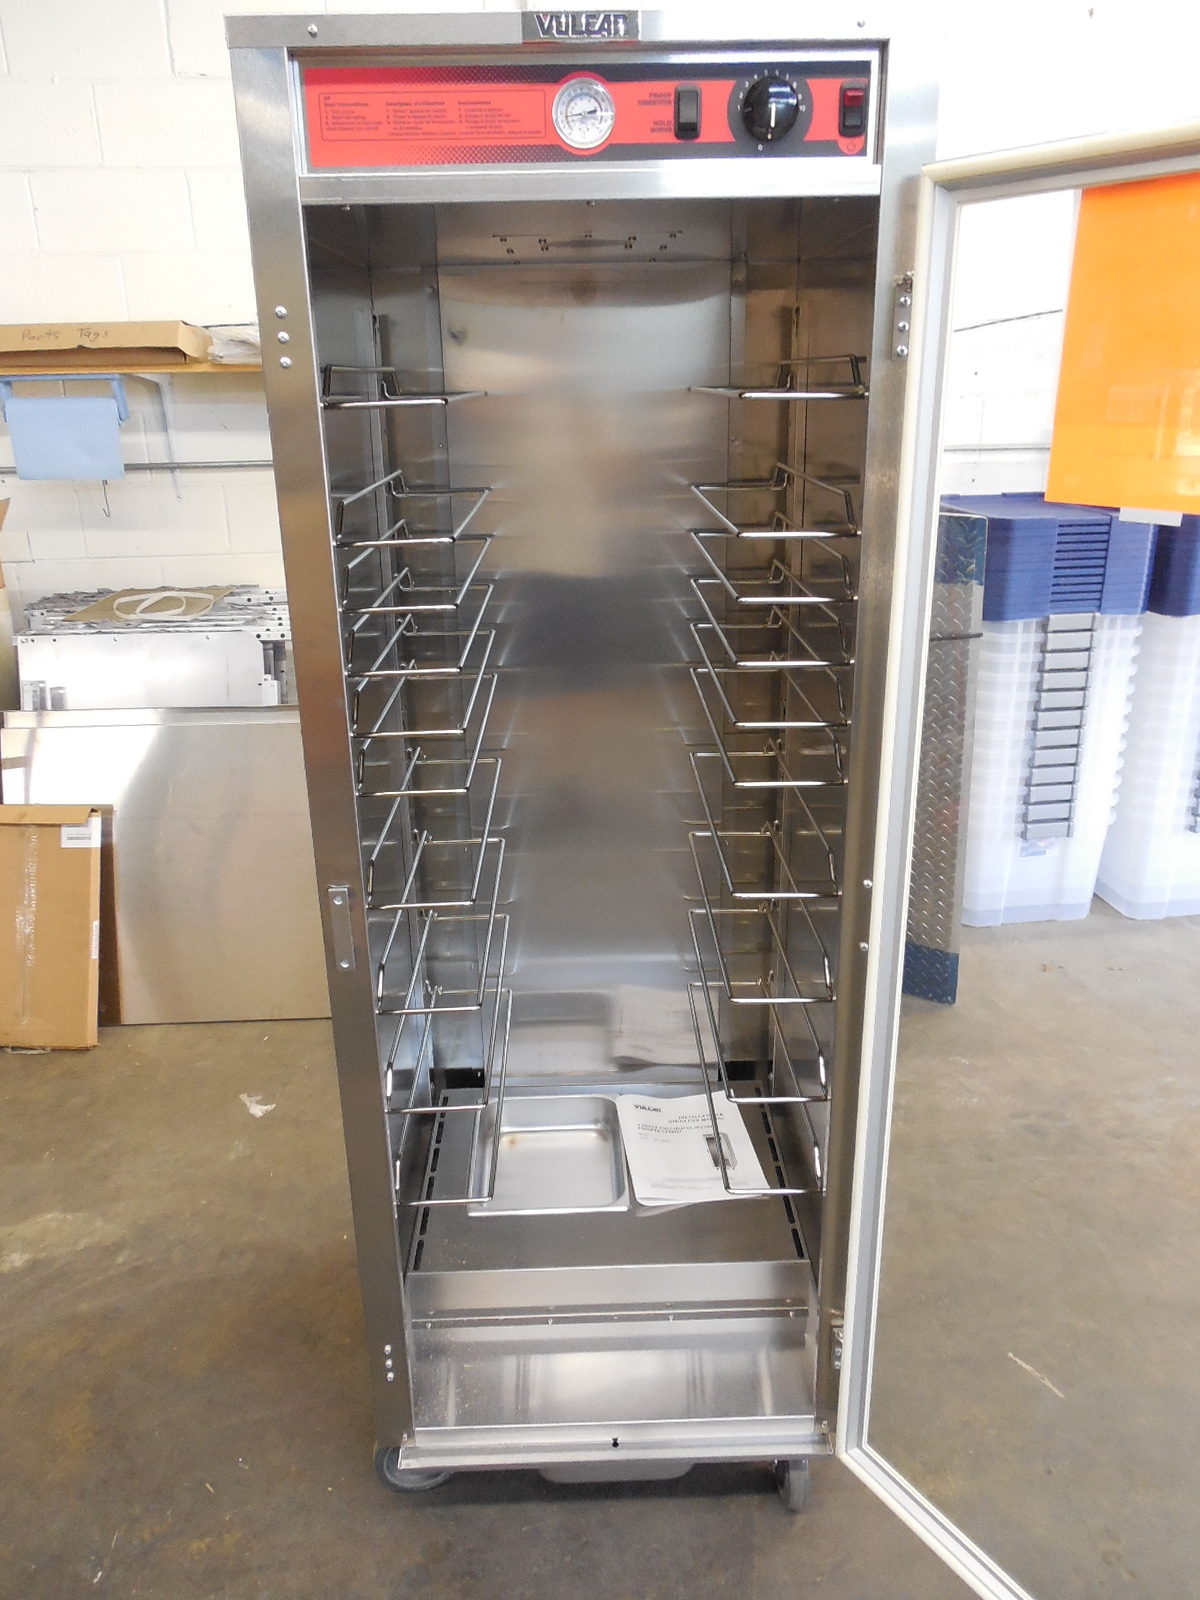 2779 Vulcan Vp18 Holding Proofing Cabinet Discounted